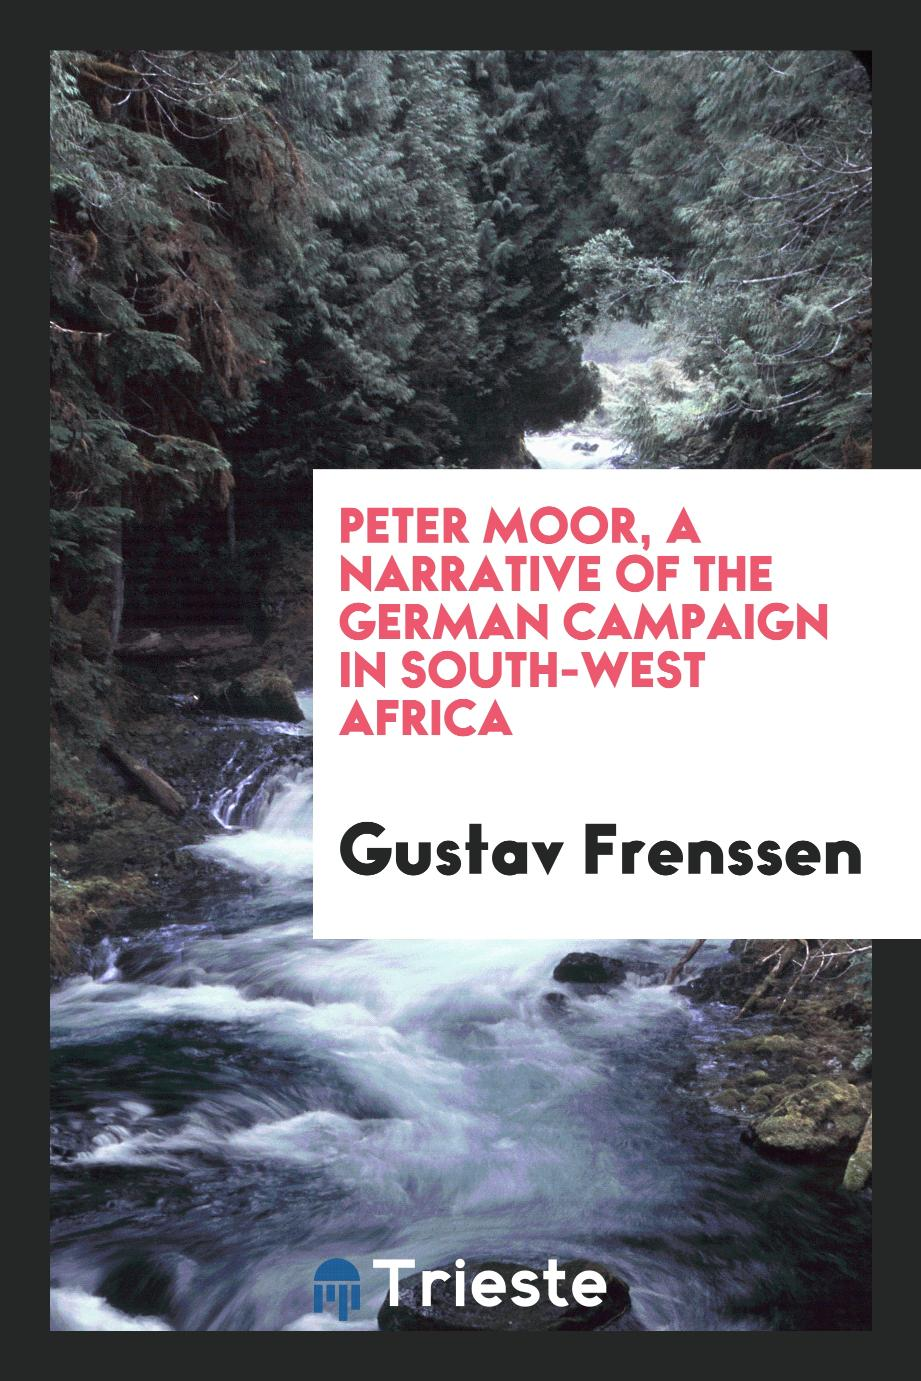 Peter Moor, a narrative of the German campaign in South-West Africa